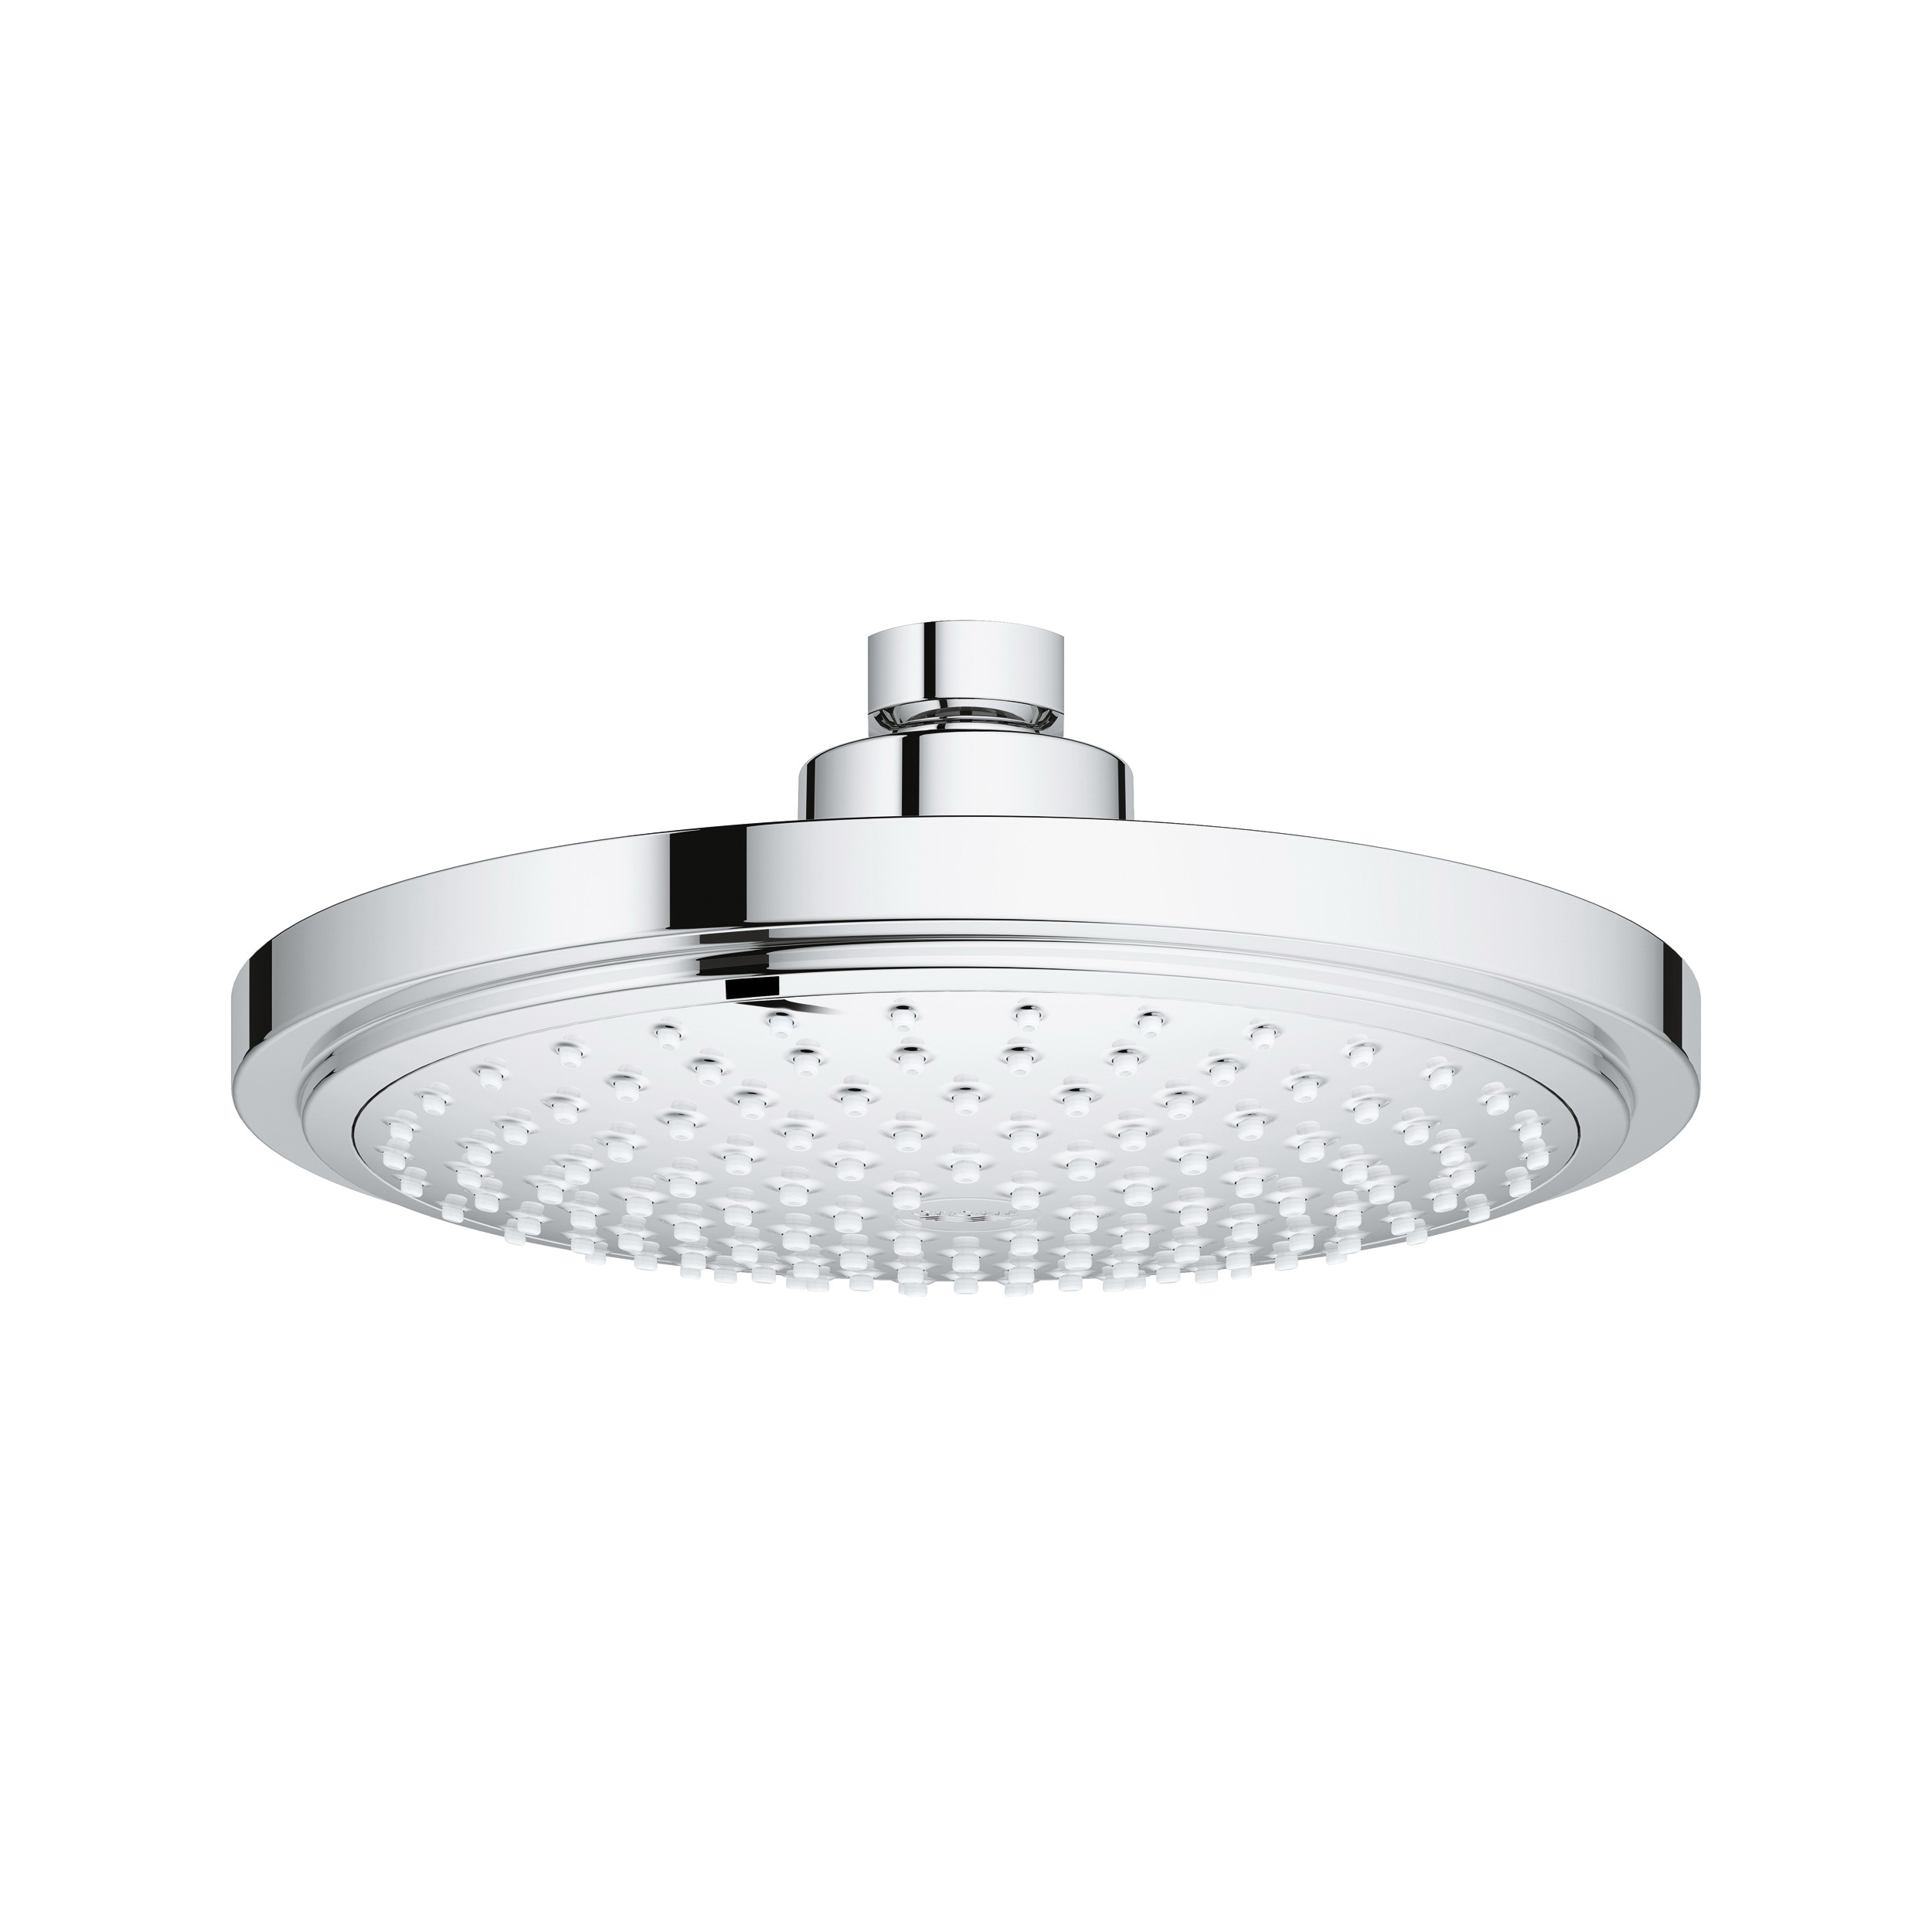 GROHE 27808000 Euphoria Cosmopolitan 180 Shower Head, 2 gpm, 1 Spray, Wall Mount, 7.06 in Head, Import